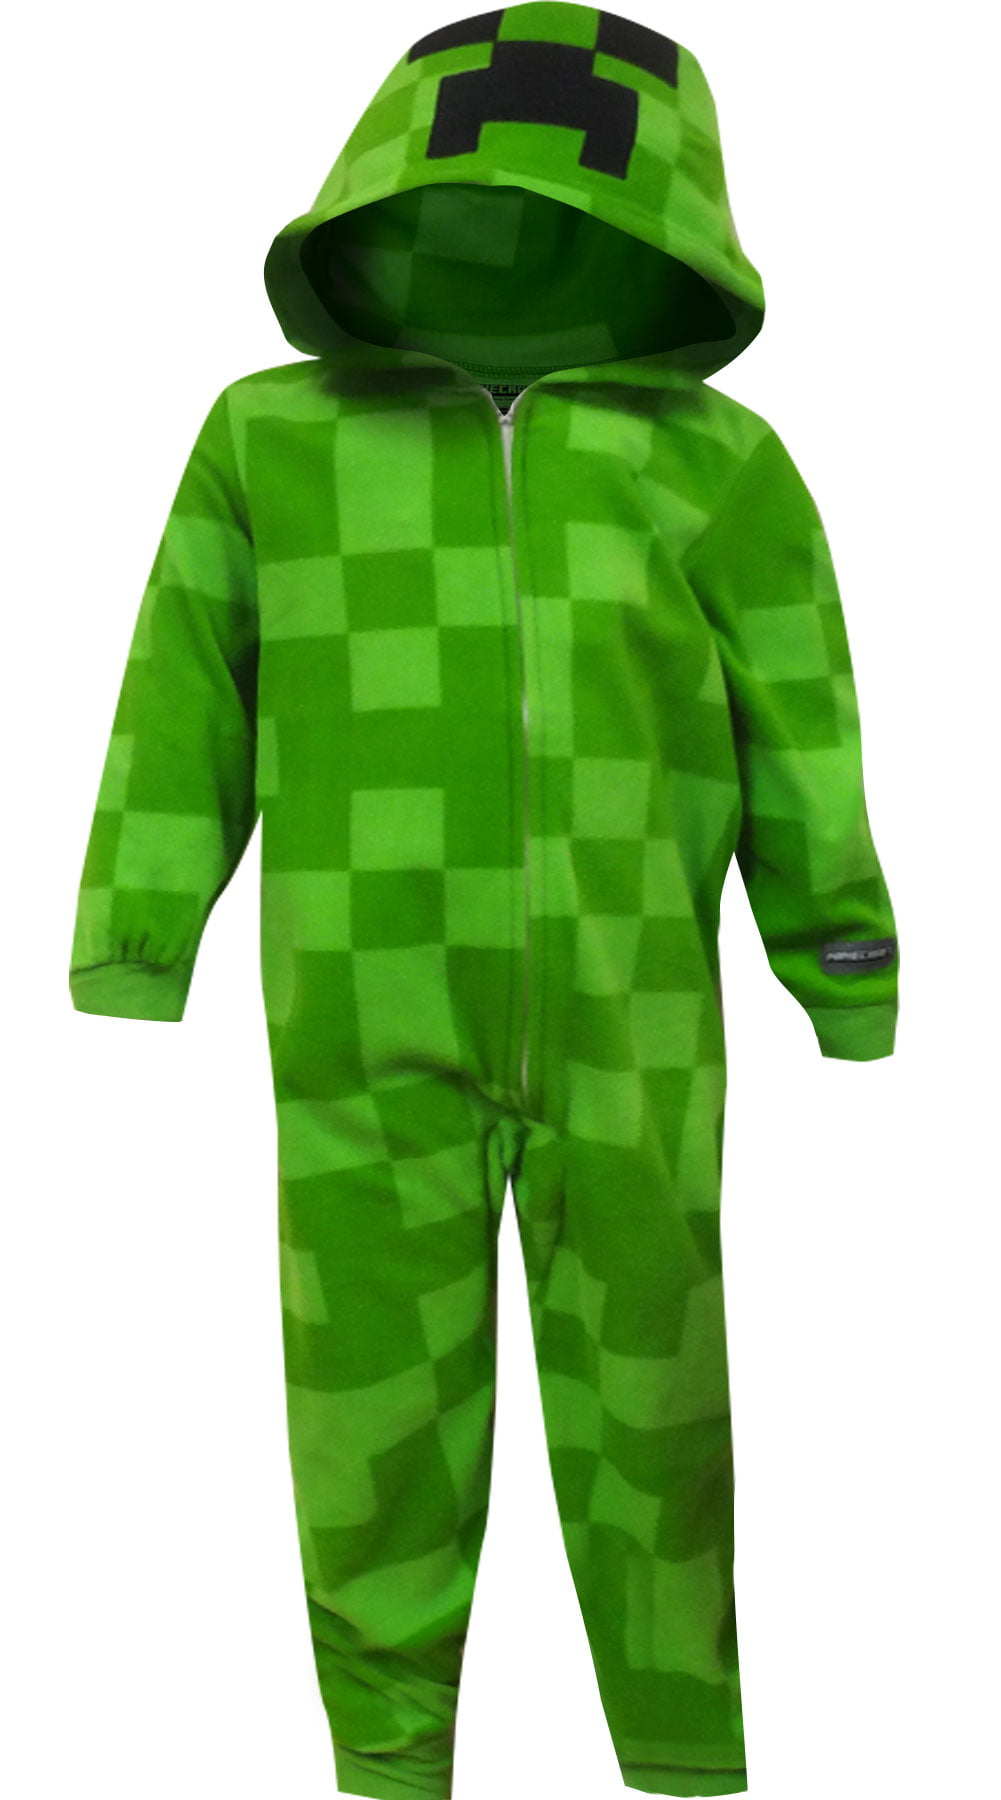 Minecraft Creeper Blanket Sleeper Pajama With Hood